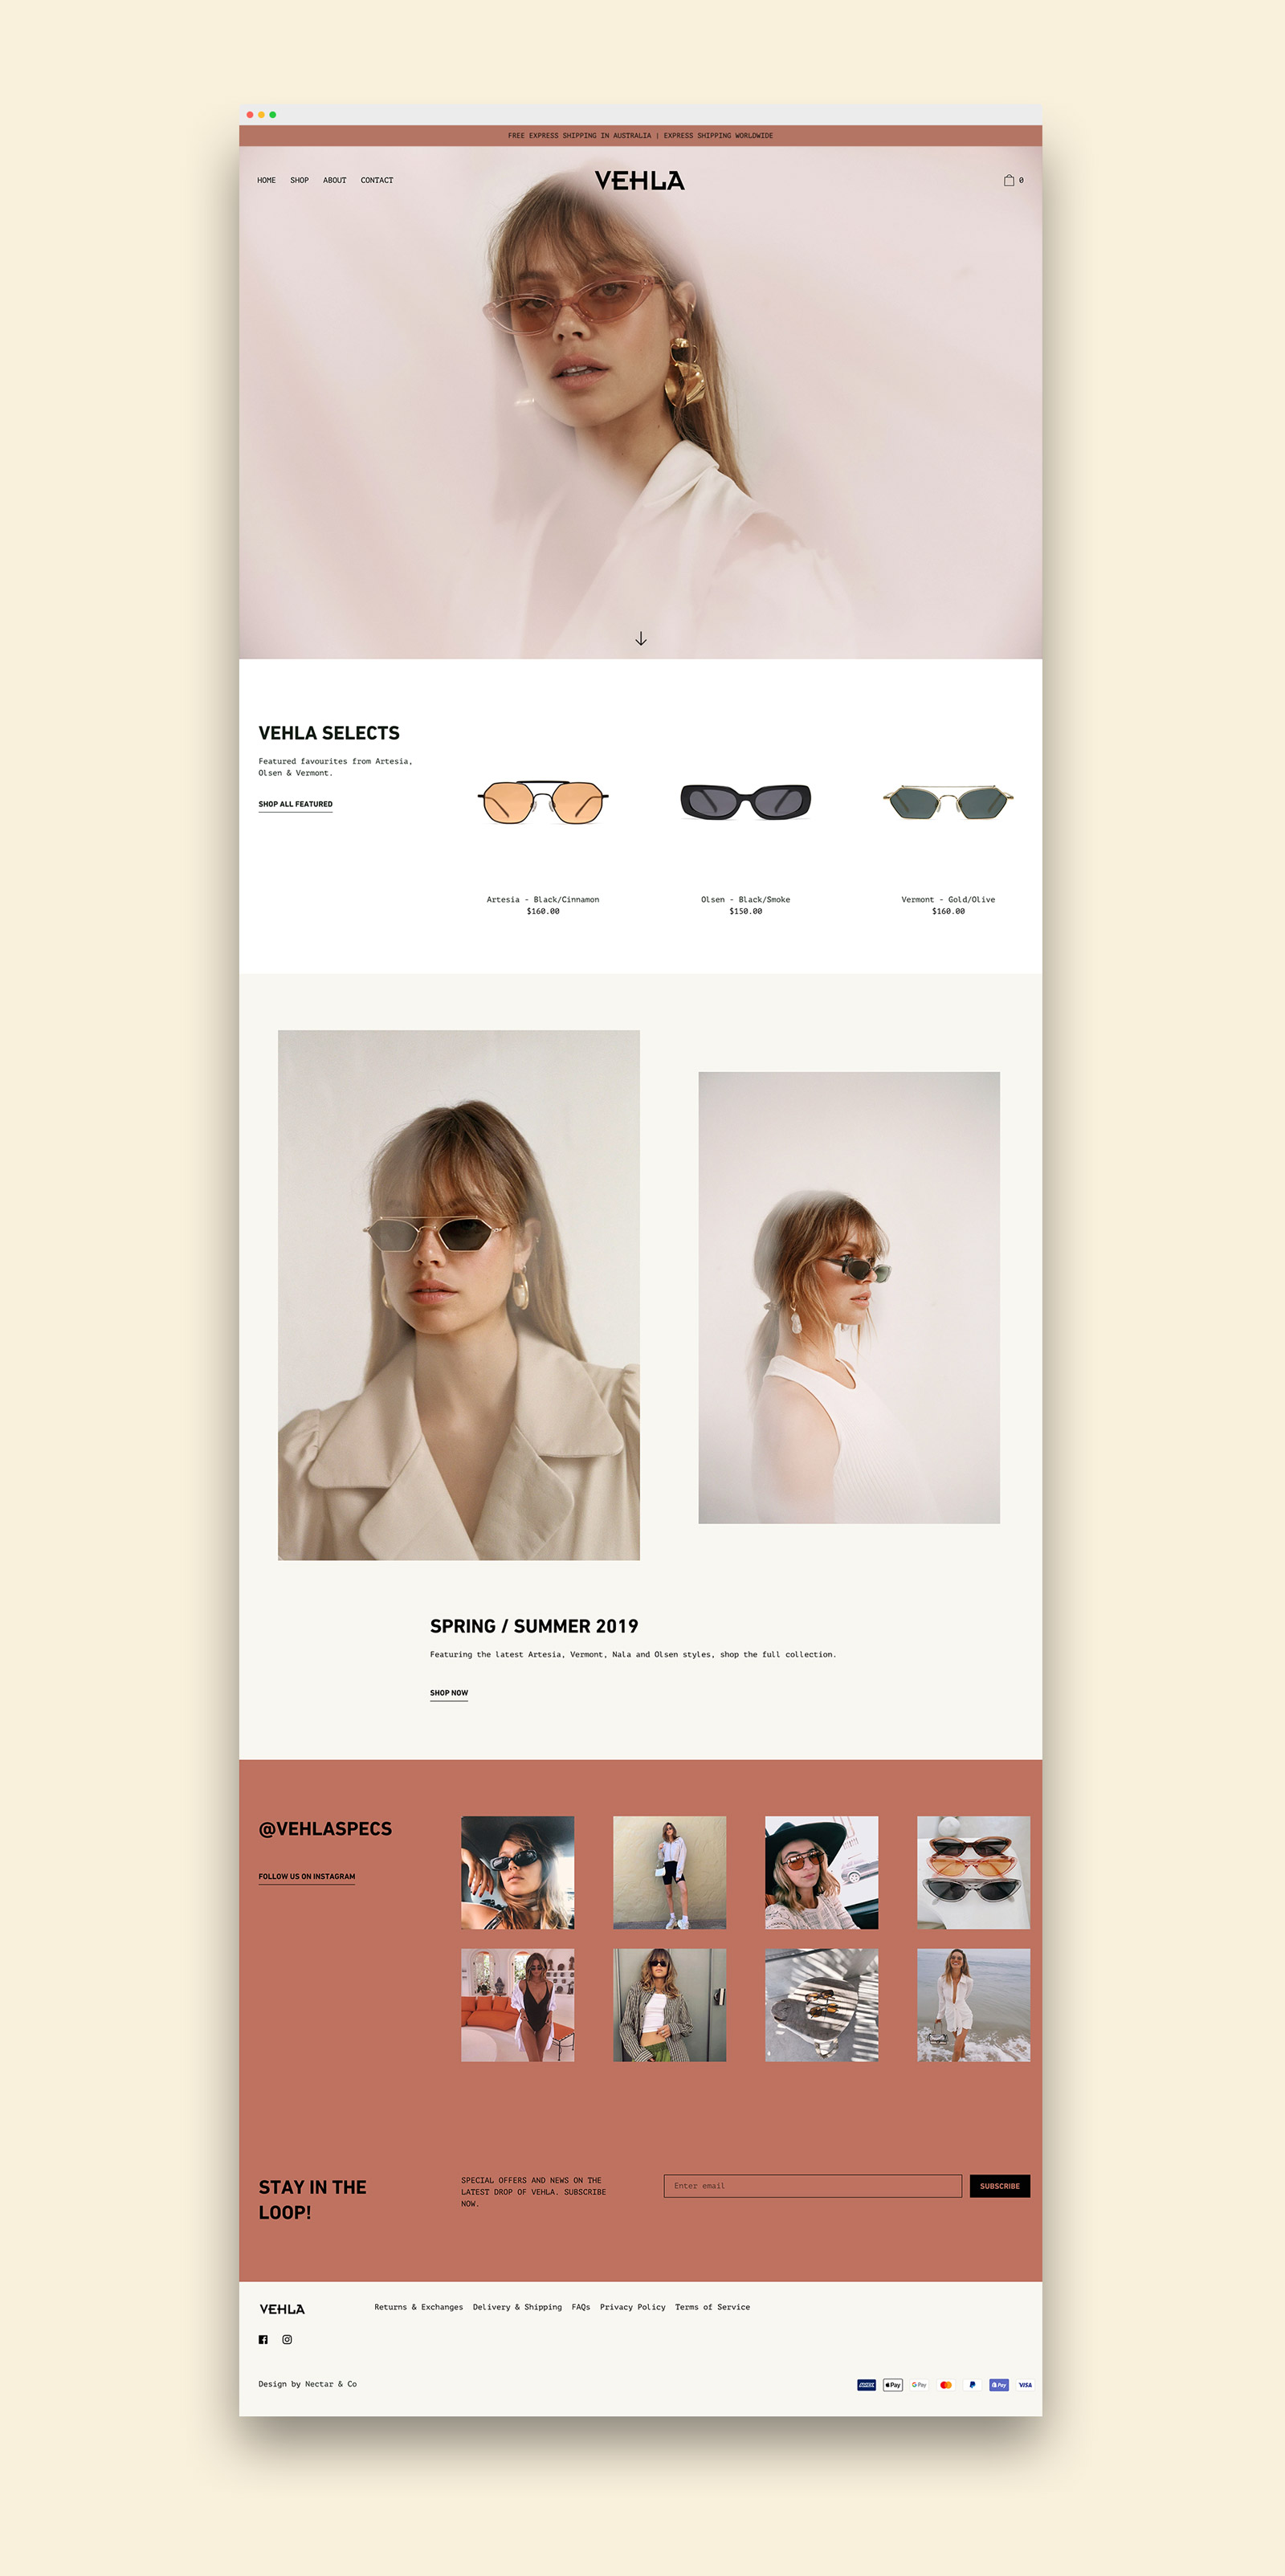 Nectar-&-Co-Vehla Specs Shopify Web Design Development Sydney.jpg